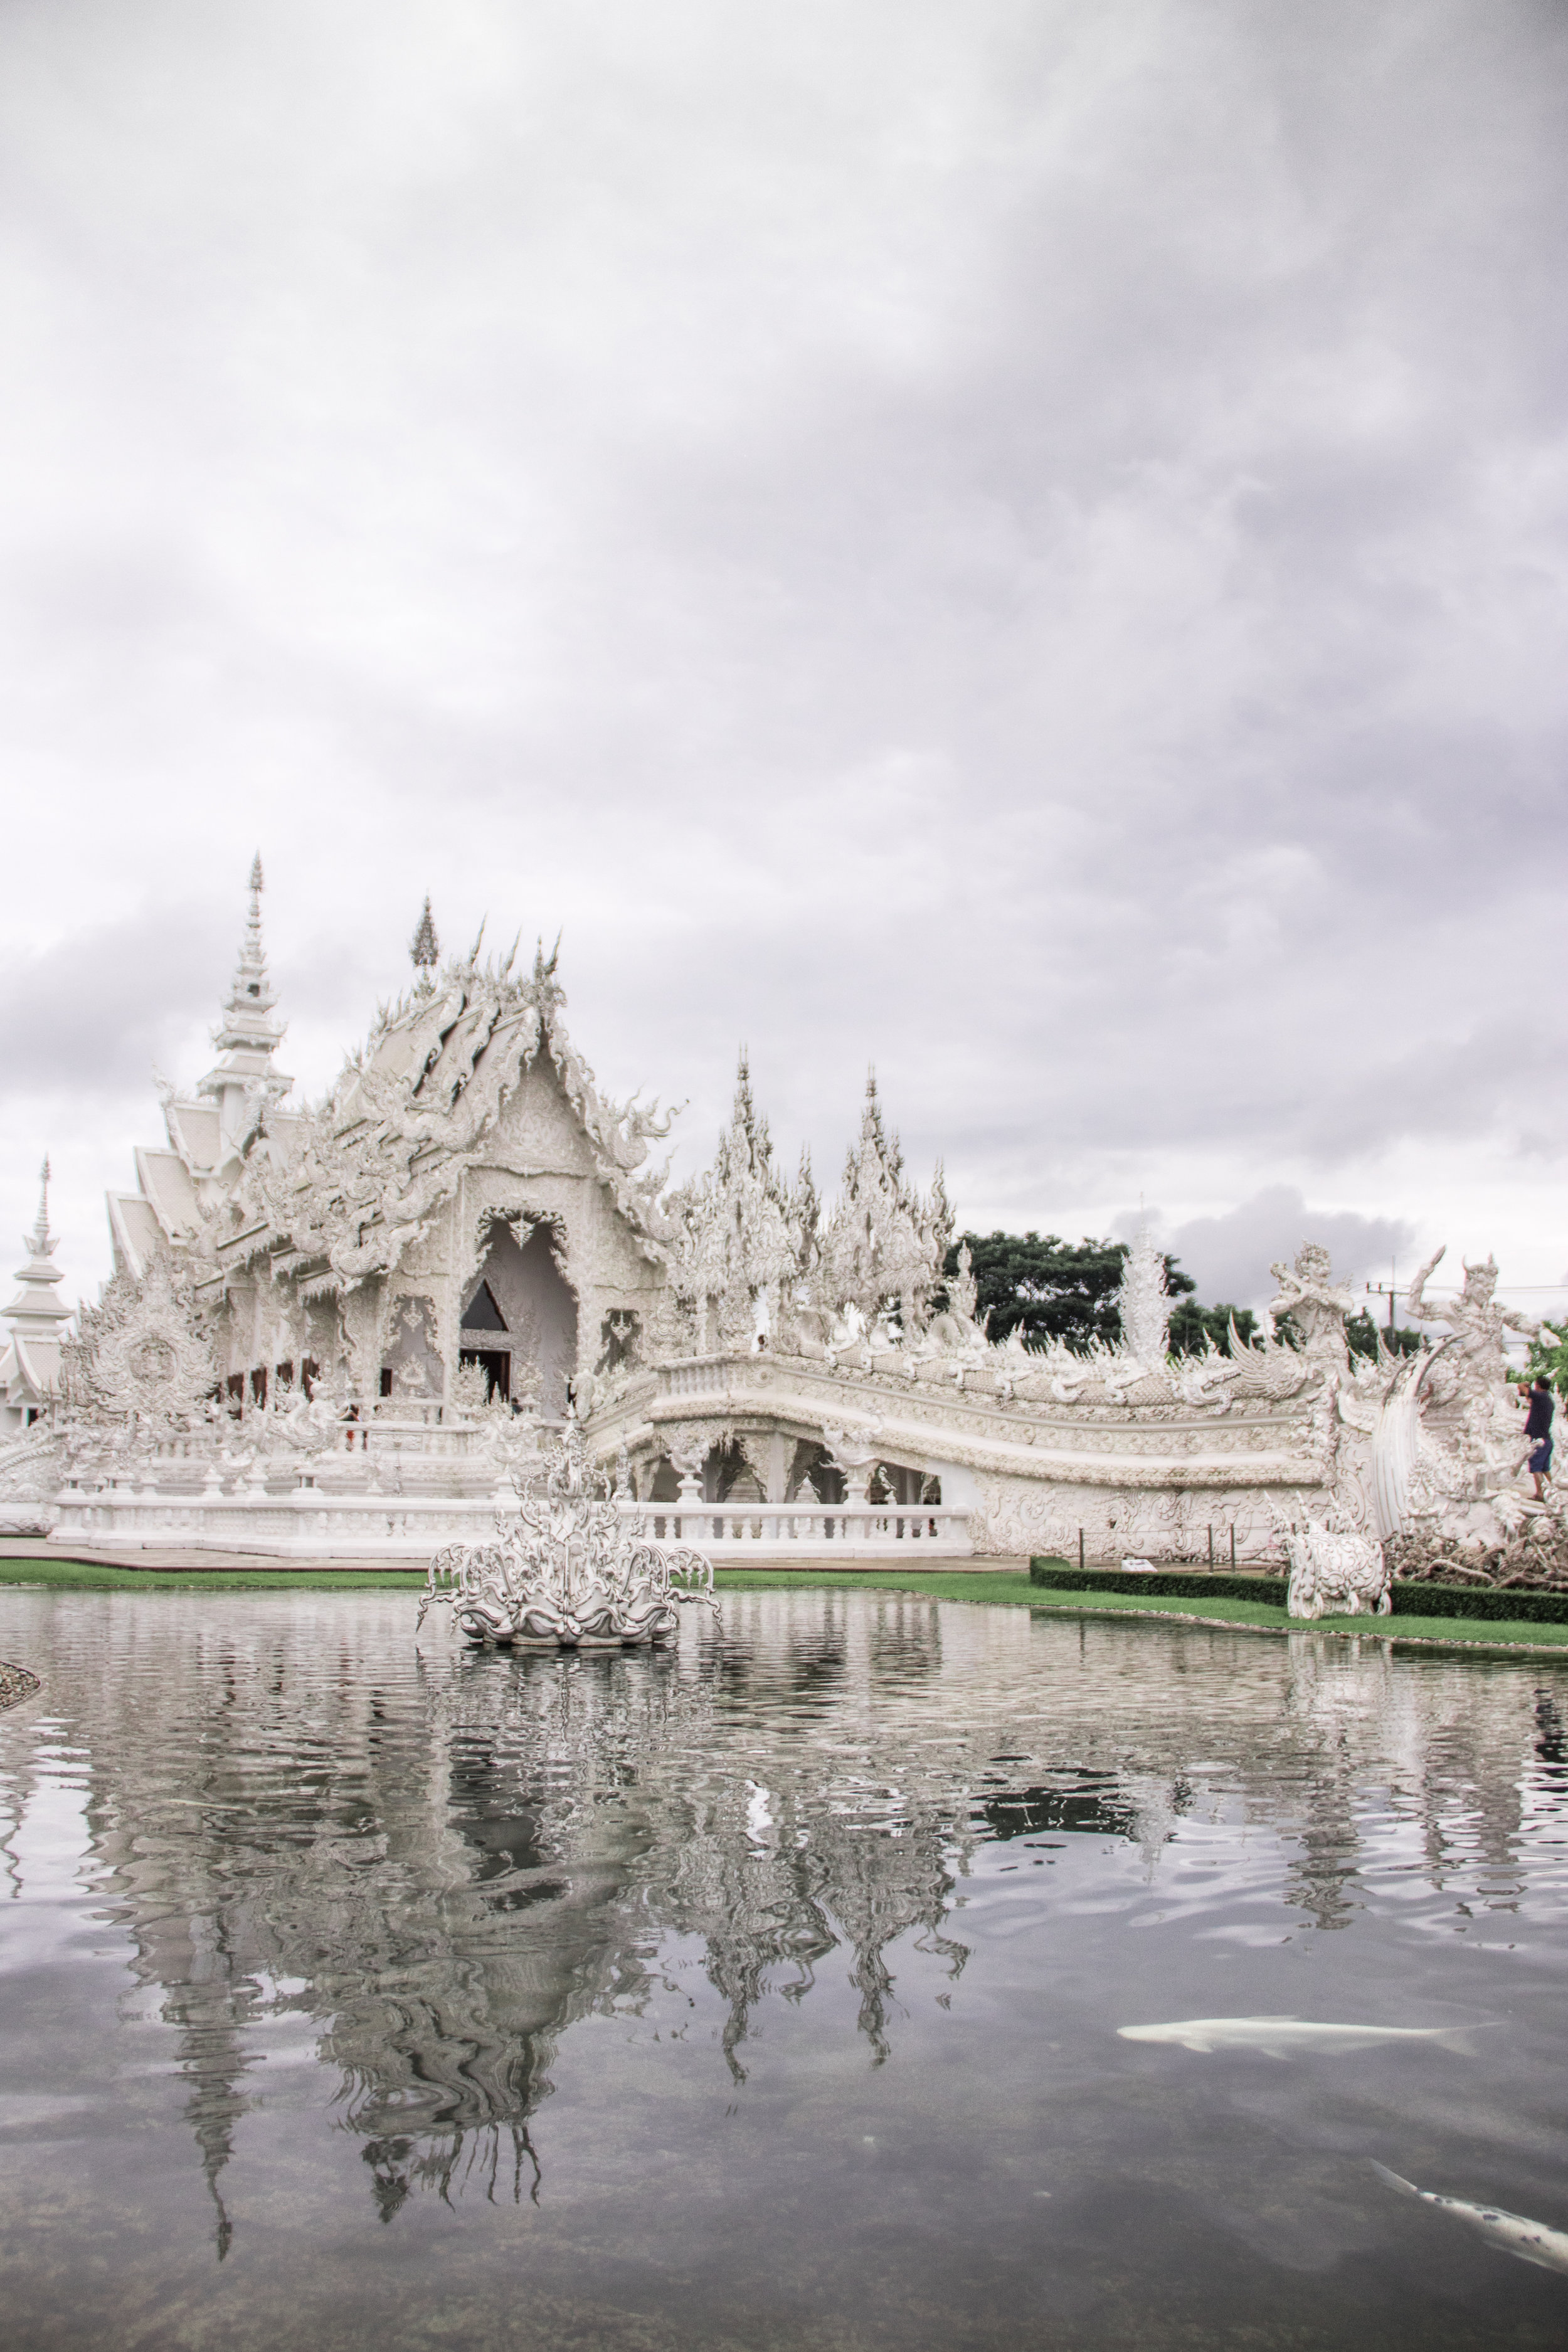 The White Temple in Chiang Rai.